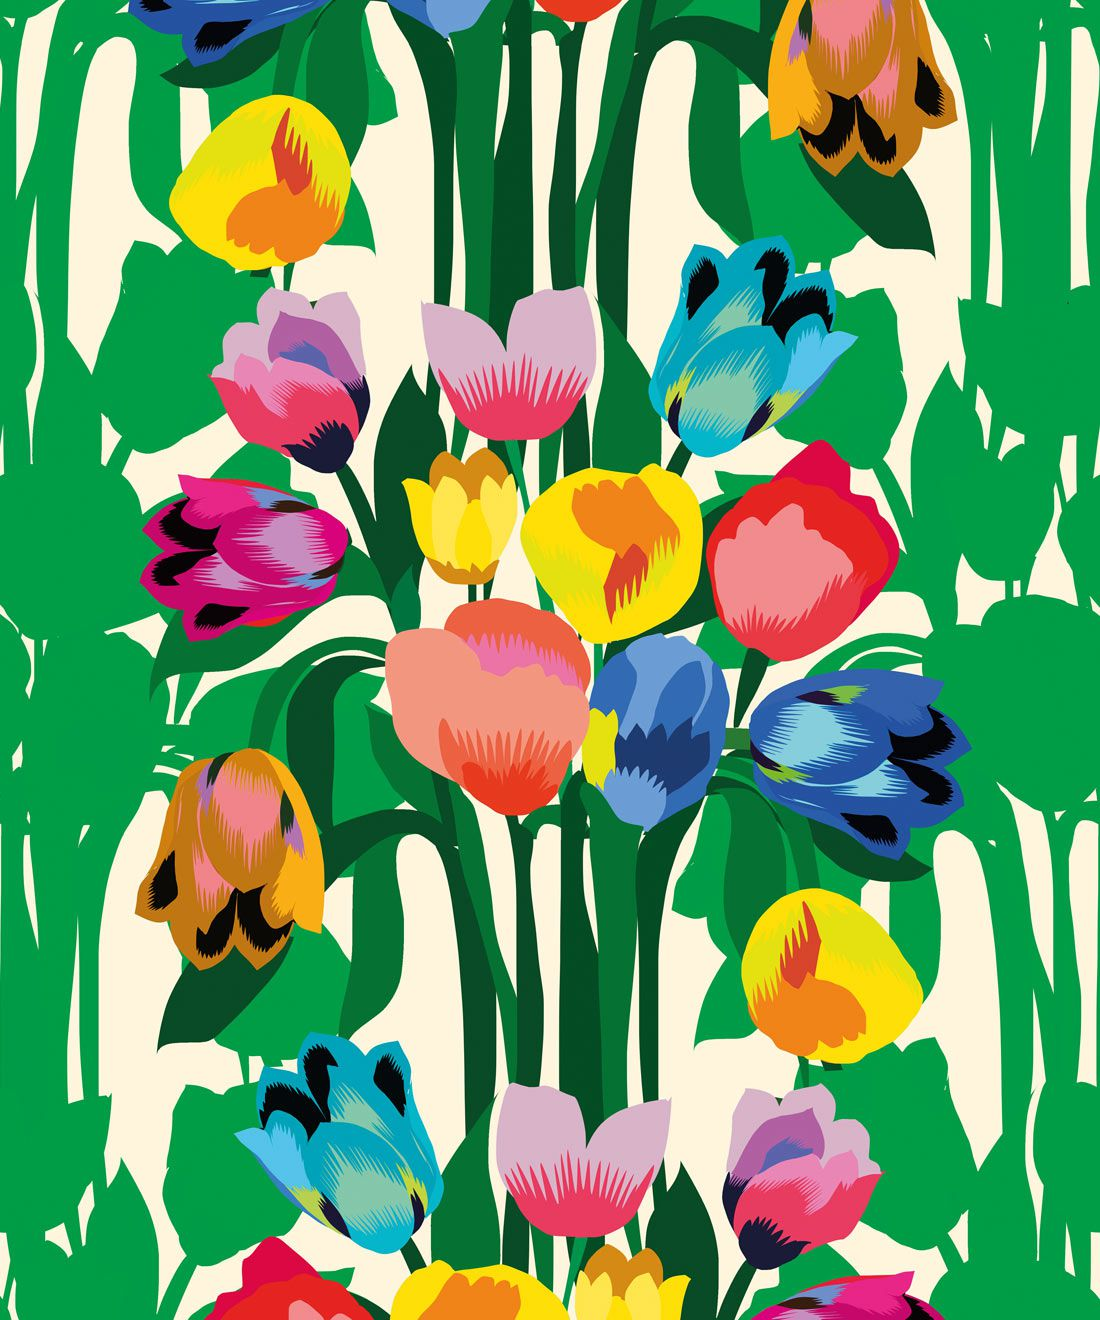 Tulips Wallpaper • Colourful Floral Wallpaper • Swatch